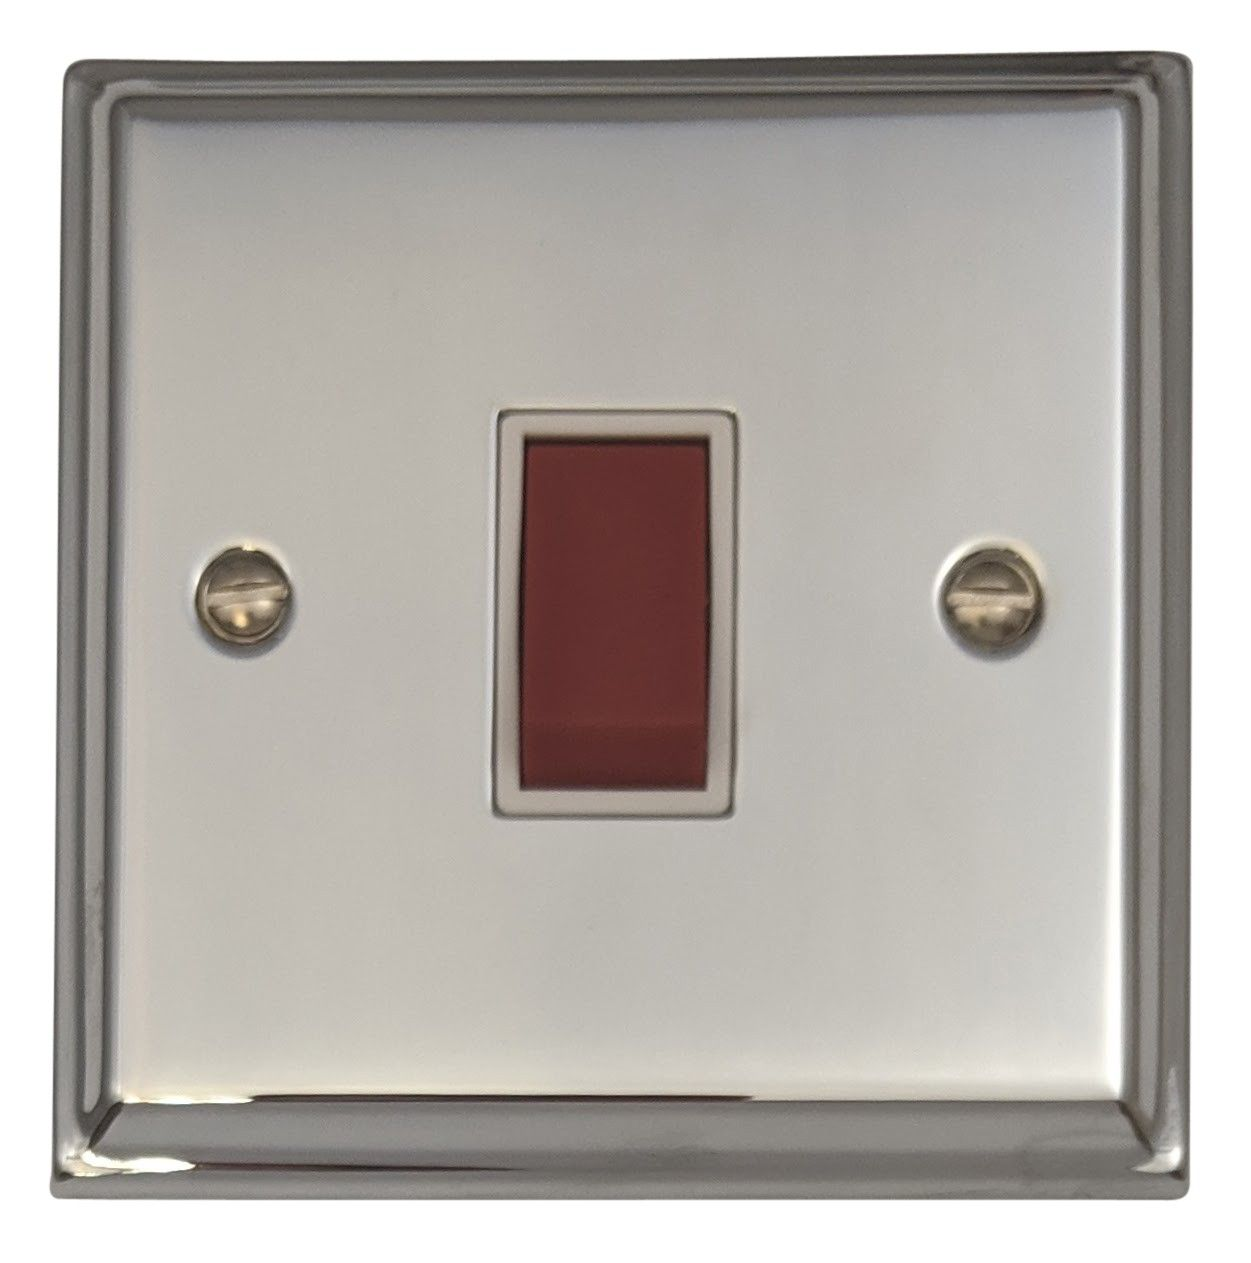 G&H DC47W Deco Plate Polished Chrome 45 Amp DP Cooker Switch Single Plate